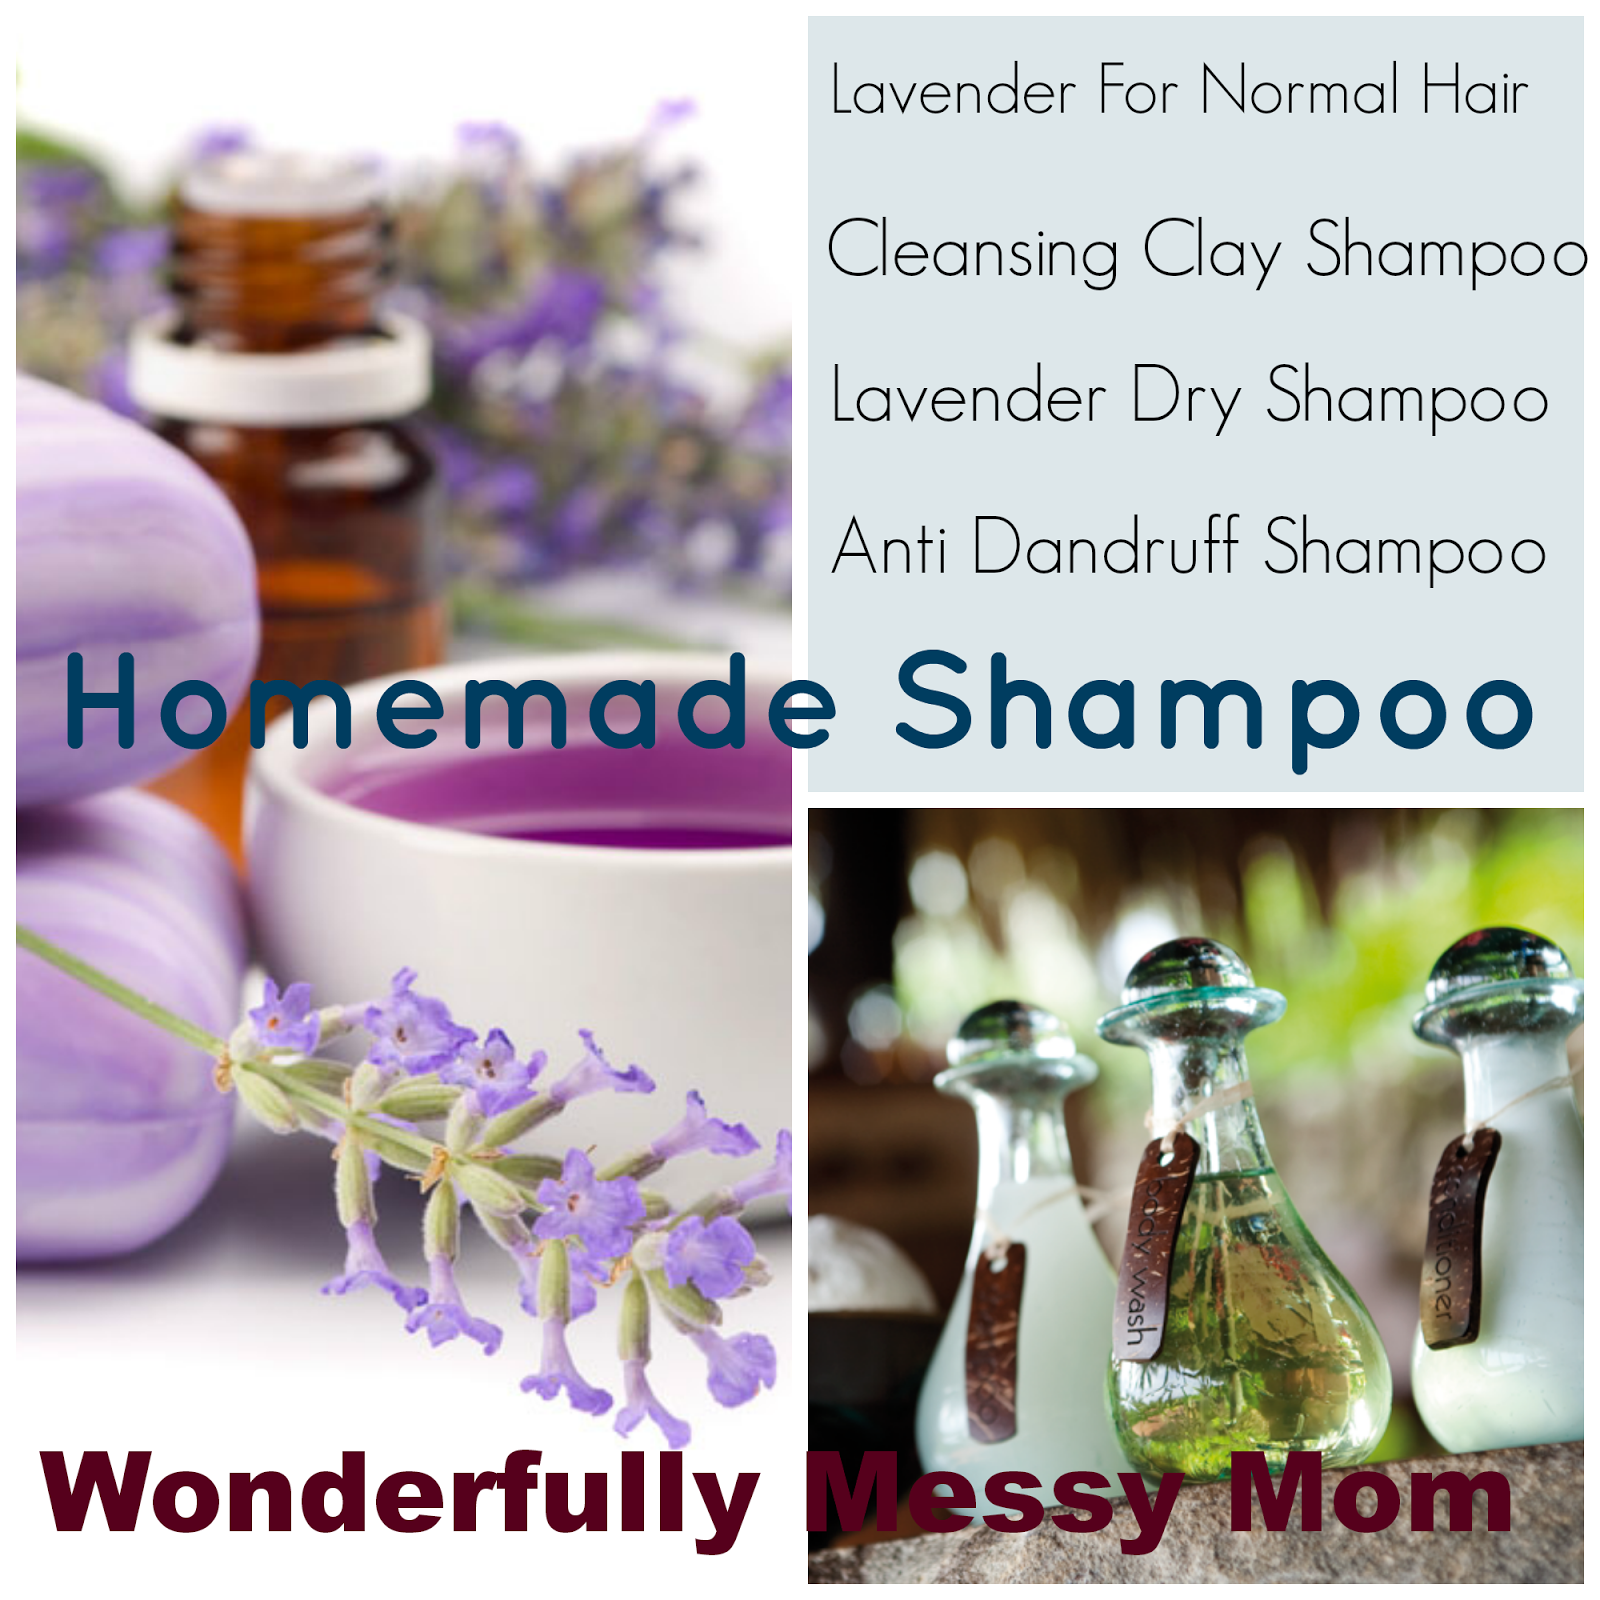 wonderfully messy mom homemade shampoo and conditioner recipes